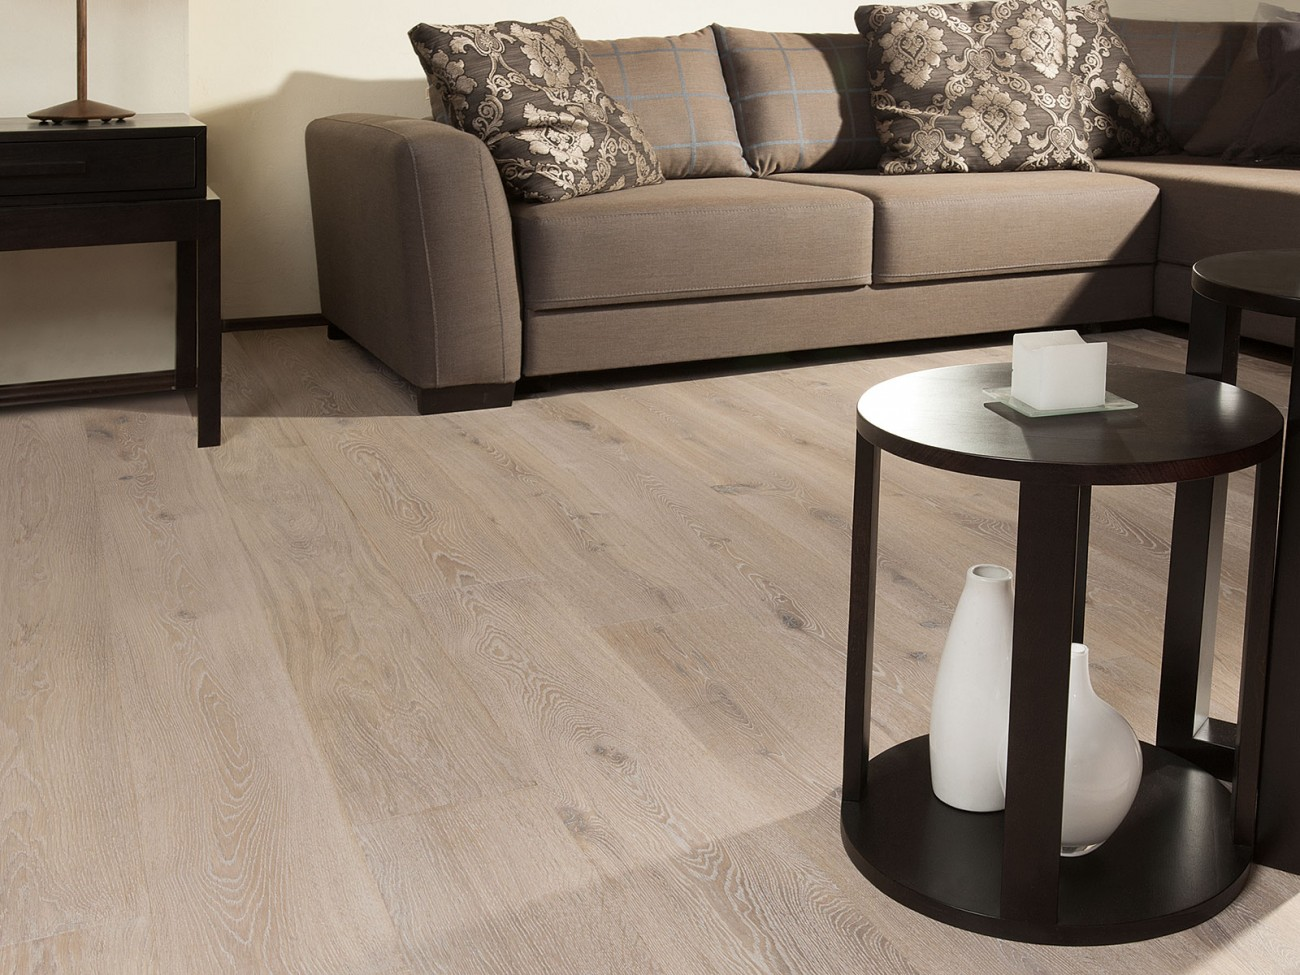 Modern Living Rooms With Real Hardwood Floors Coswickcom - Modern hardwood floors